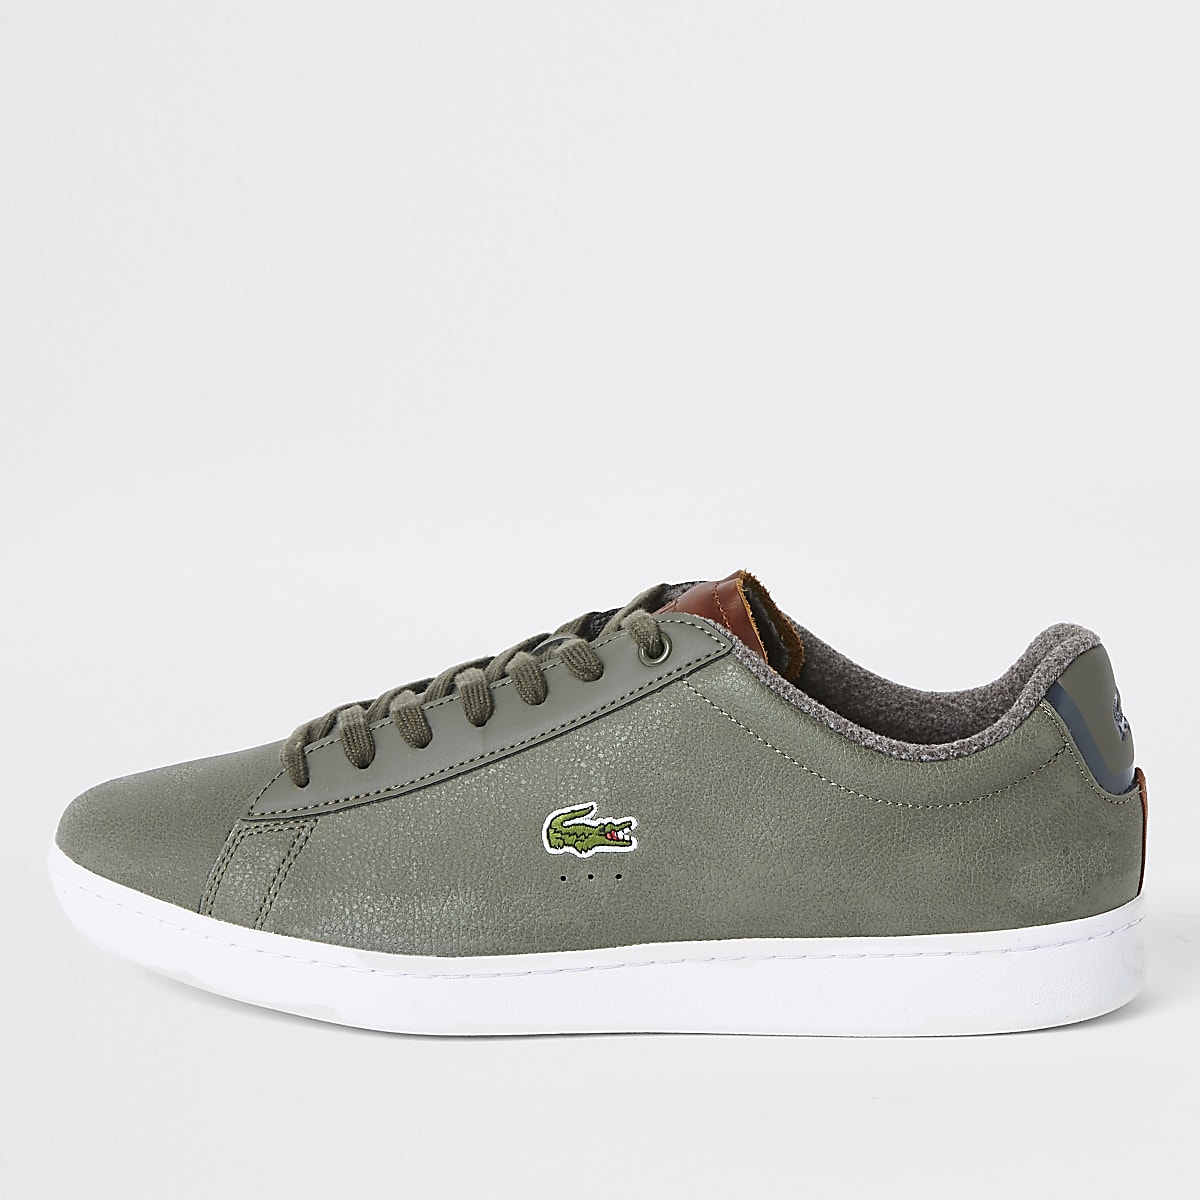 Green Court Trainers Lacoste Leather Lace Up kwPX8nN0OZ